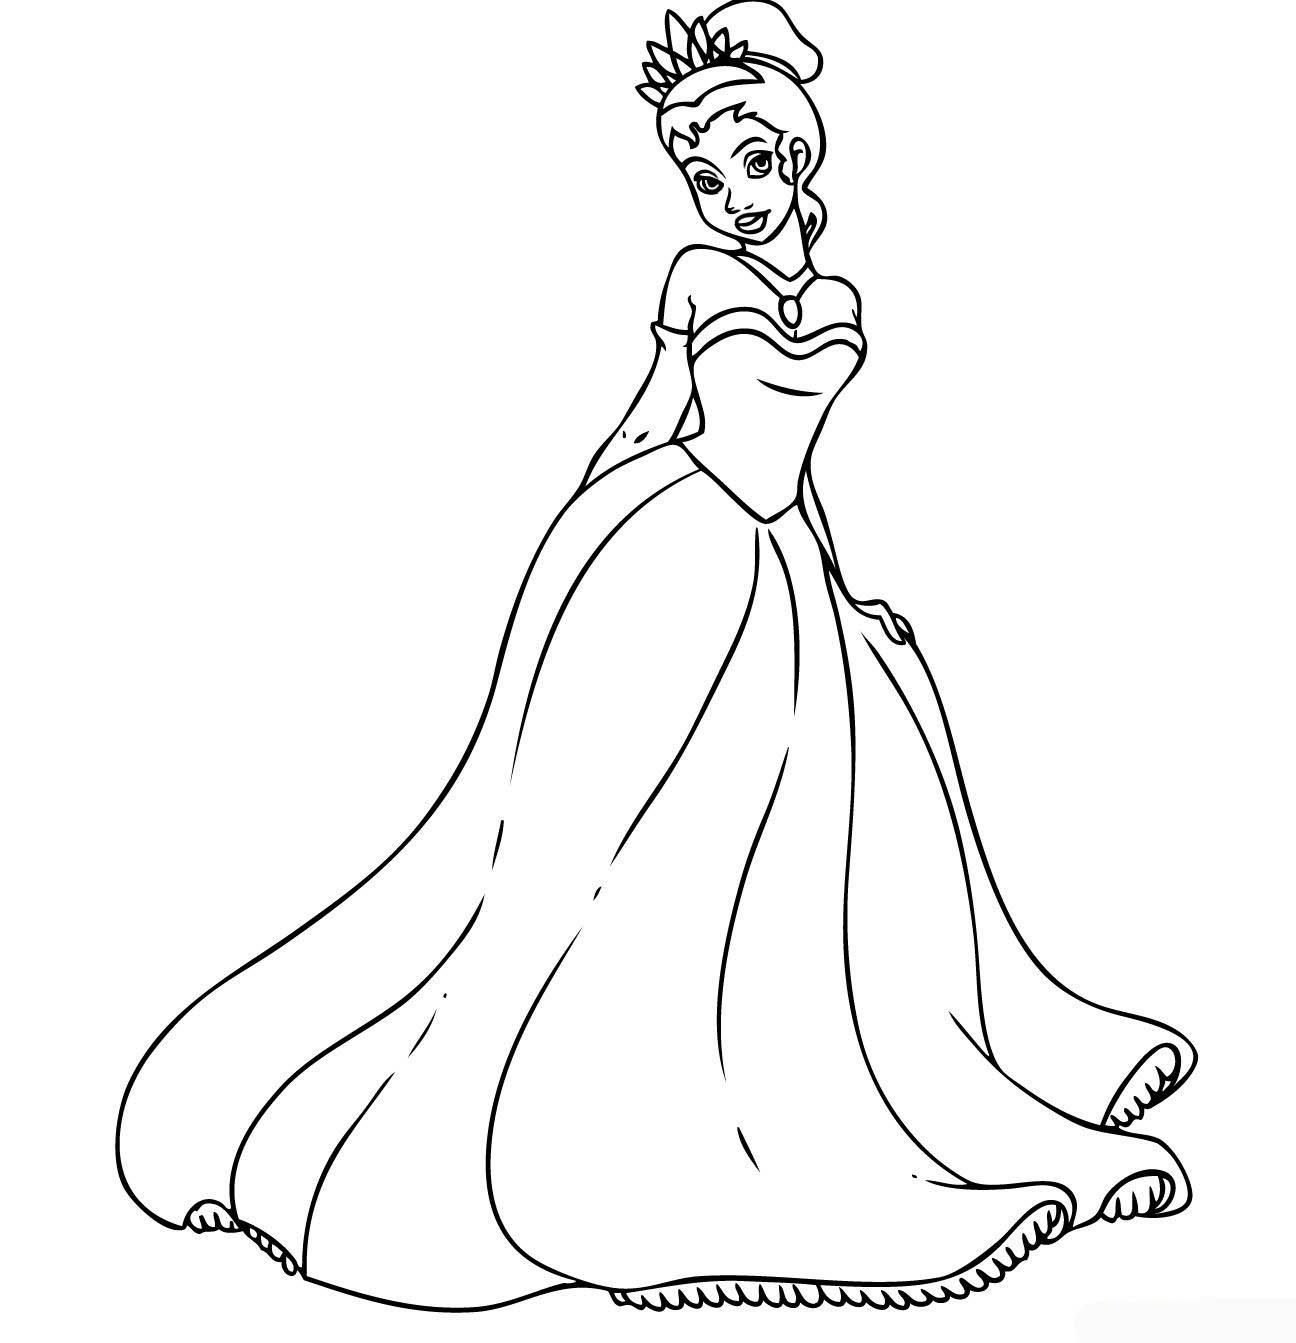 Free coloring pages disney princesses - Disney Princess Tiana Coloring Pages Free Disney Princess Cartoon Character Coloring Pages Pictures For Kids